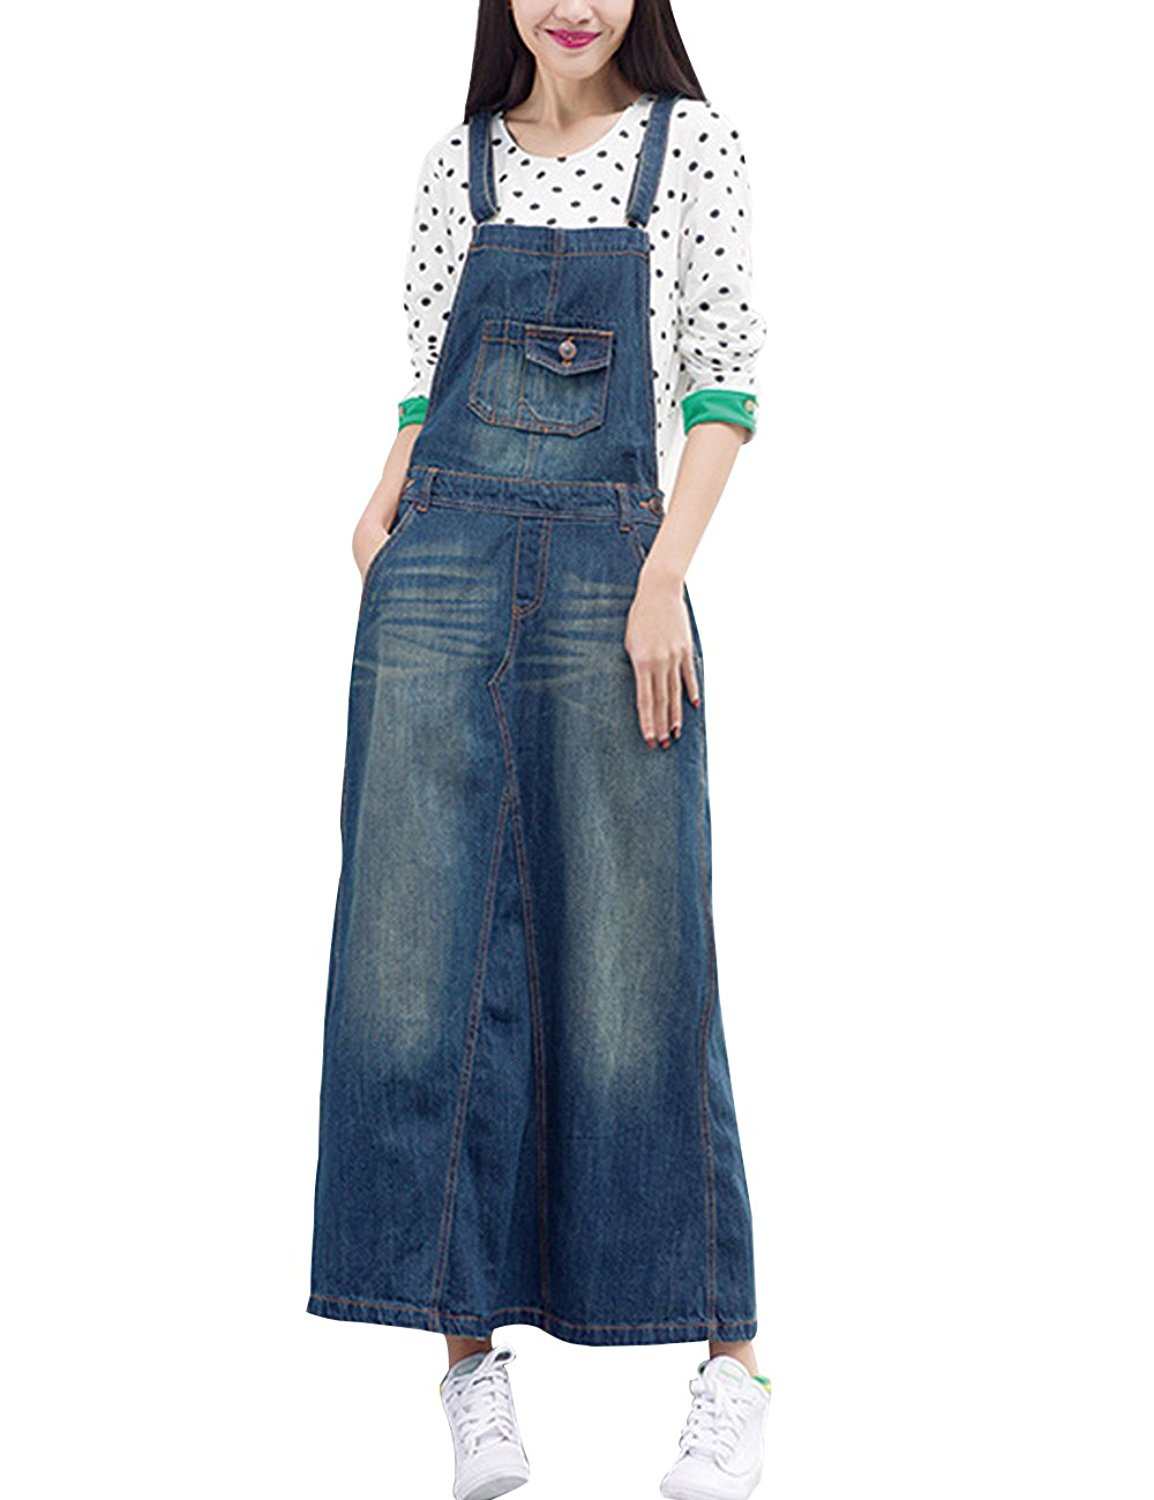 5ff5ed29342 Get Quotations · Zoulee Women s Casual Denim Dress Bib Overall Dress  Jumpsuits Rompers